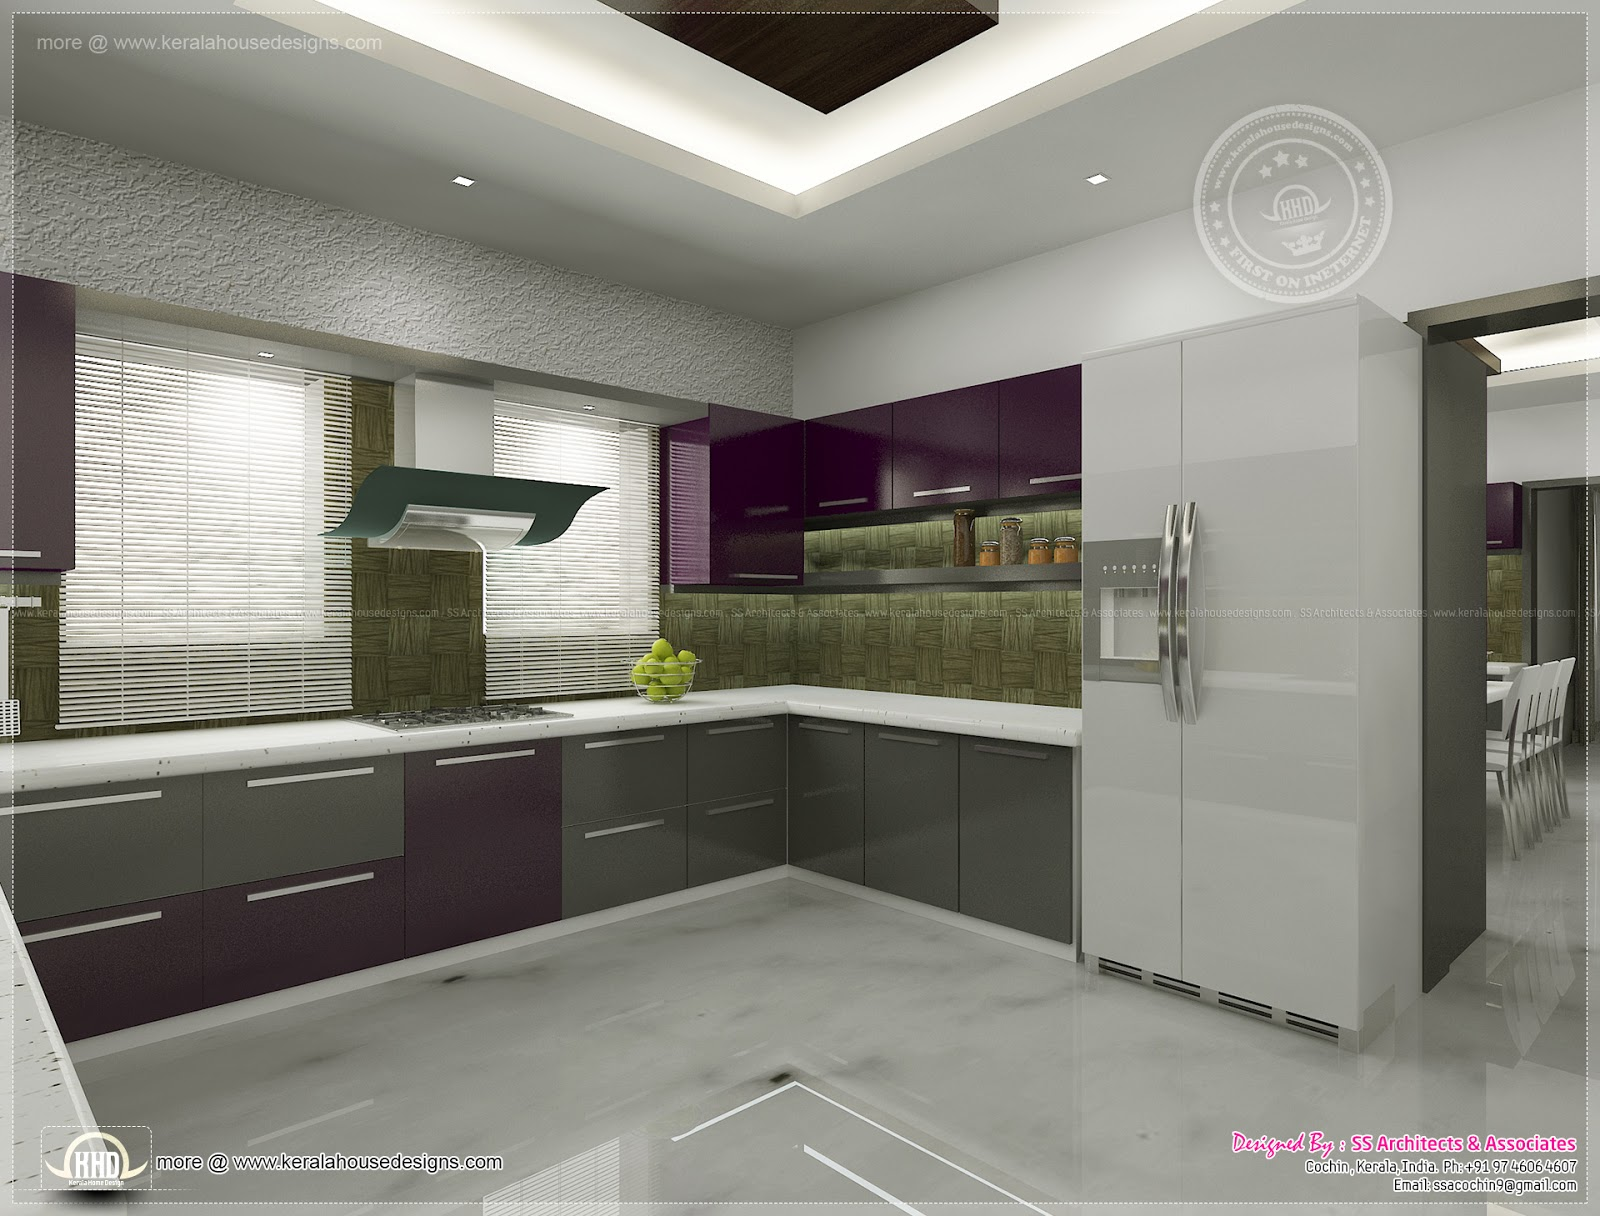 Kitchen interior views by ss architects cochin kerala for Kerala house interior painting photos